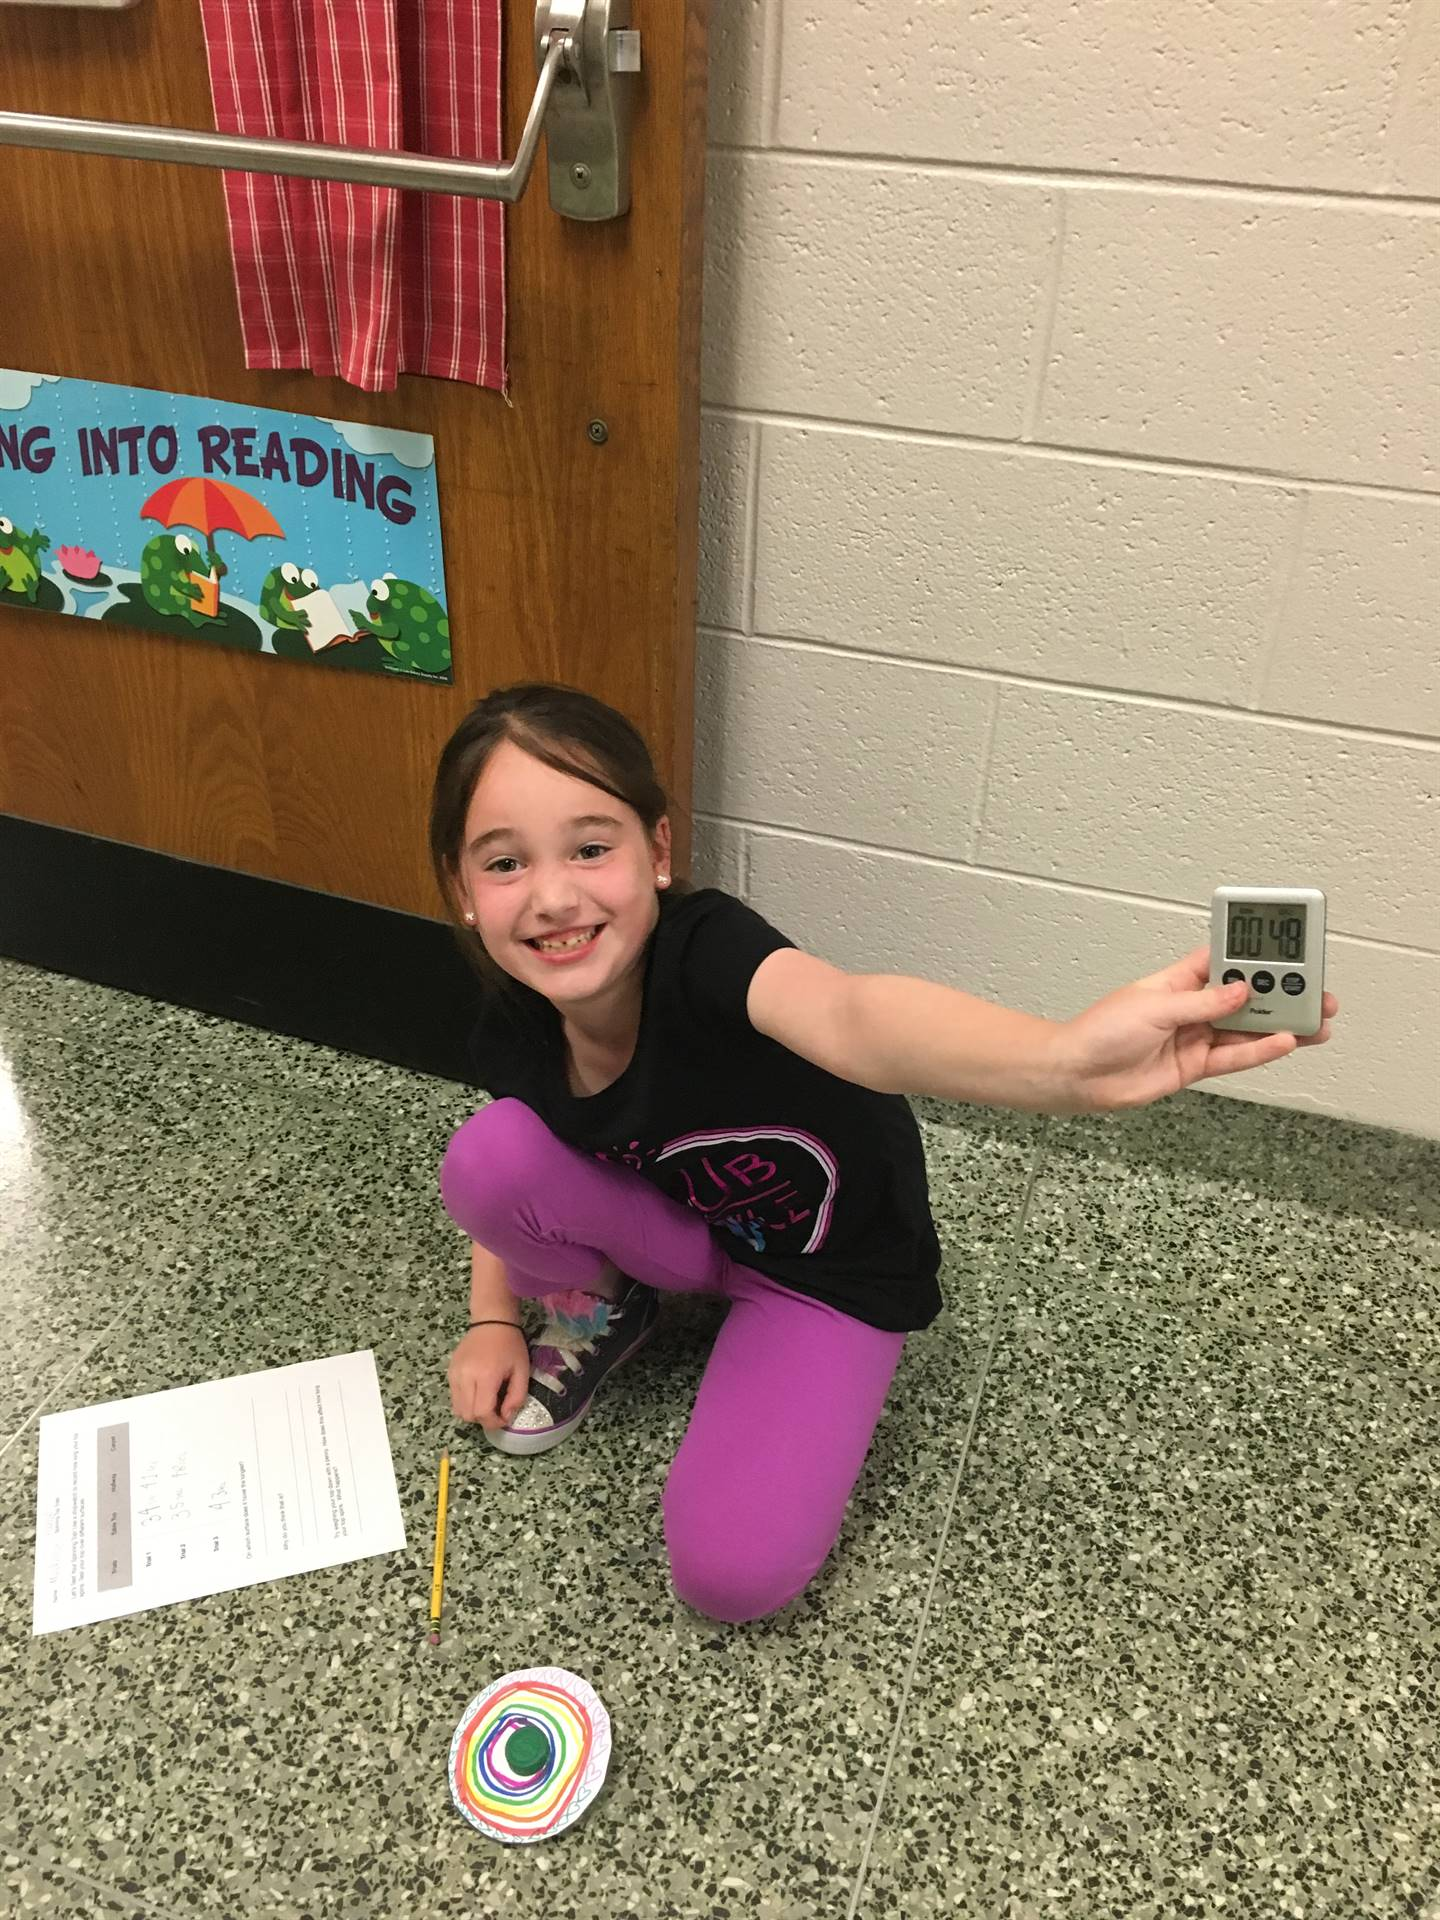 Student Showing Timer and Spinning Top